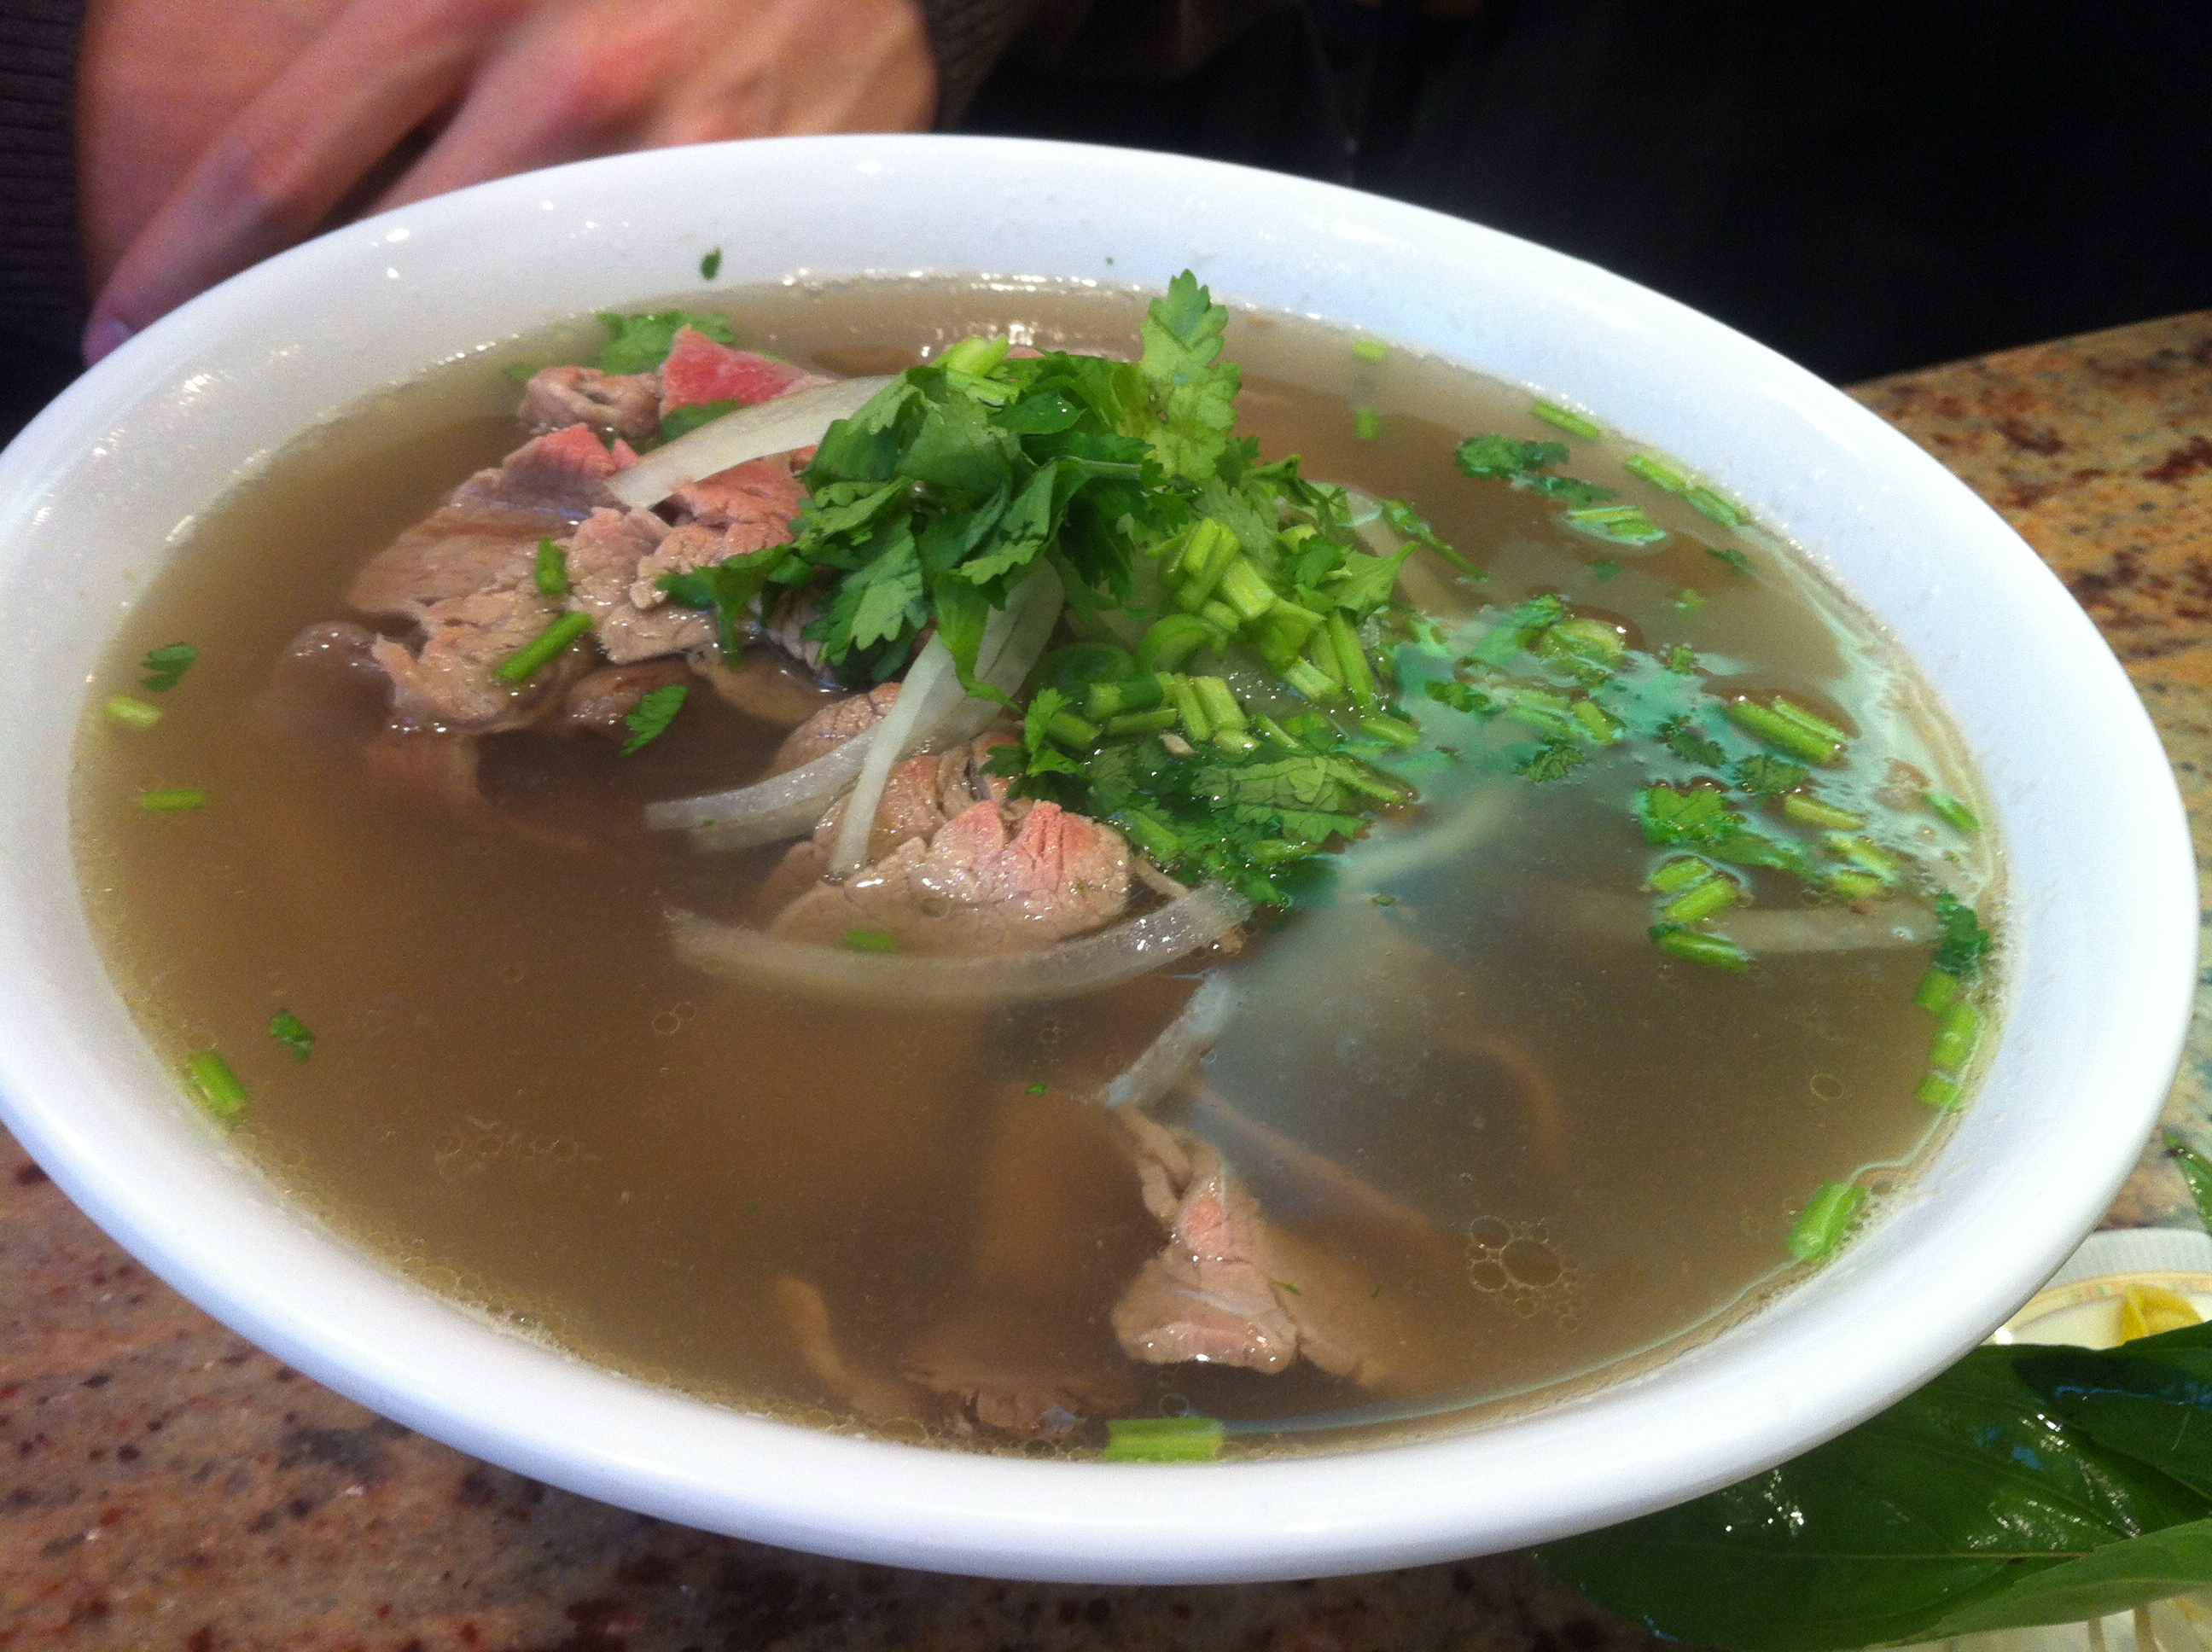 Braised Confused Beef Pho Eye Of Round Steak And Well Done Flank